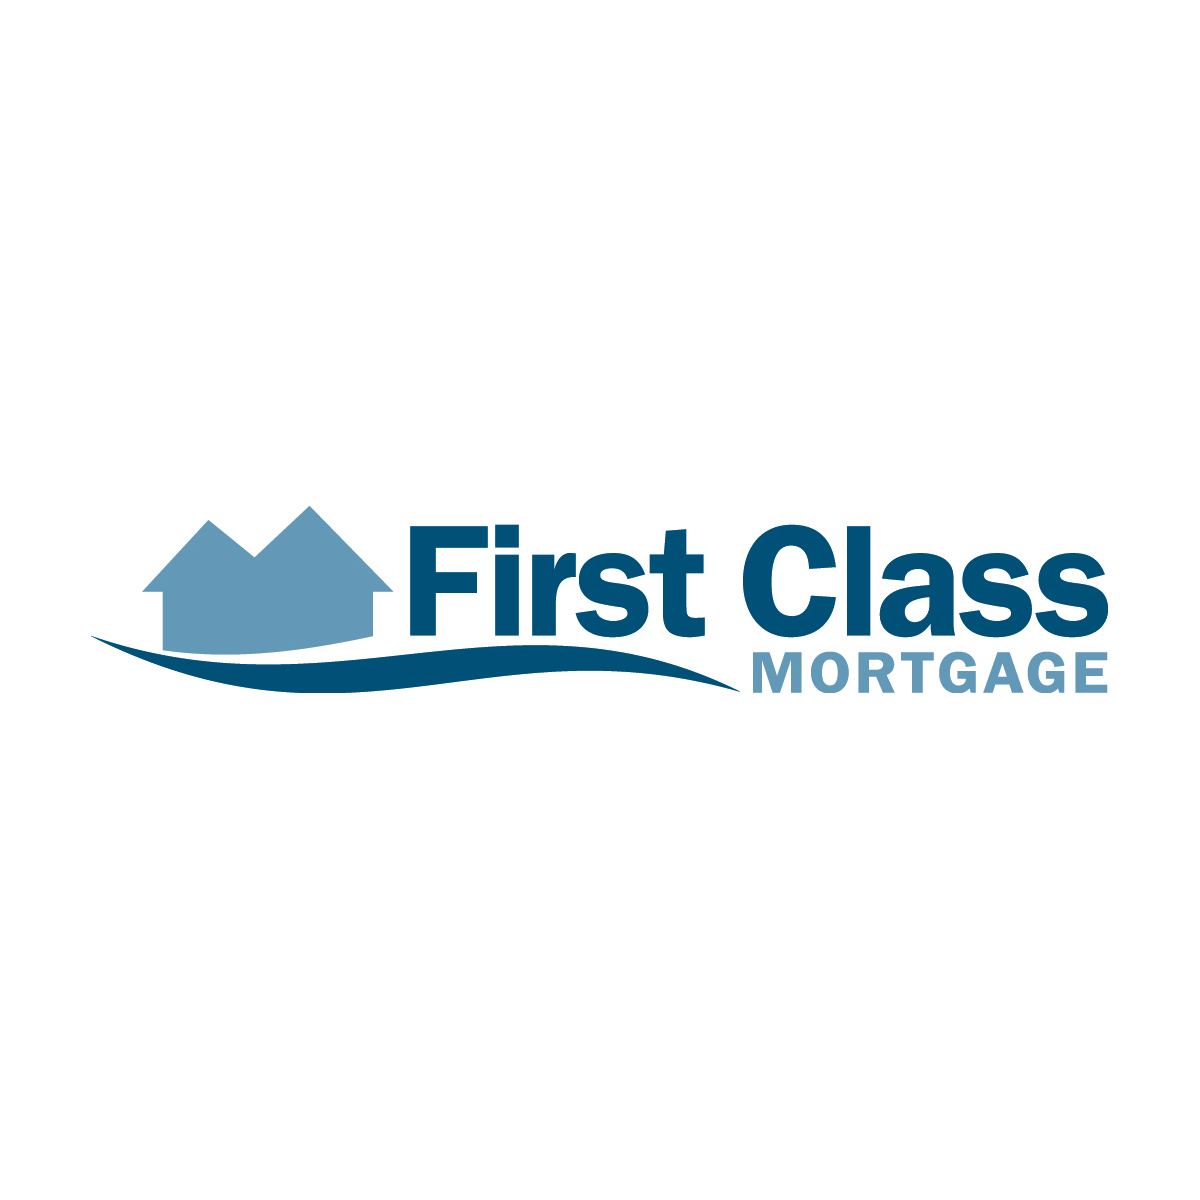 First Class Mortgage - Maple Grove